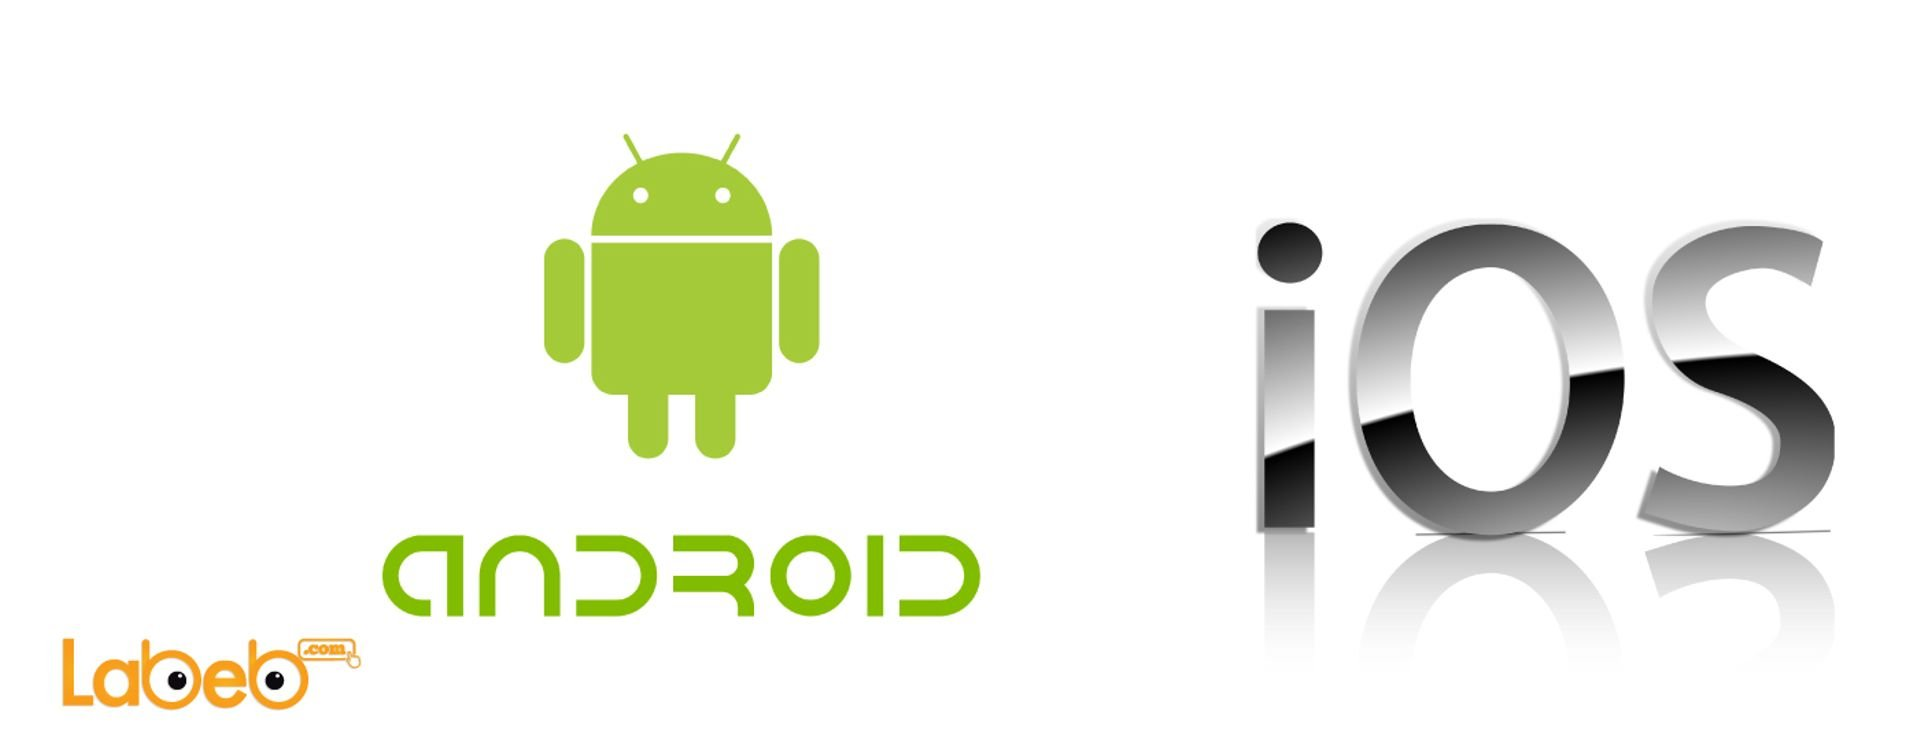 2015 Statistics Showed that 1.4 Billion People Uses Android Powered Smartphones.